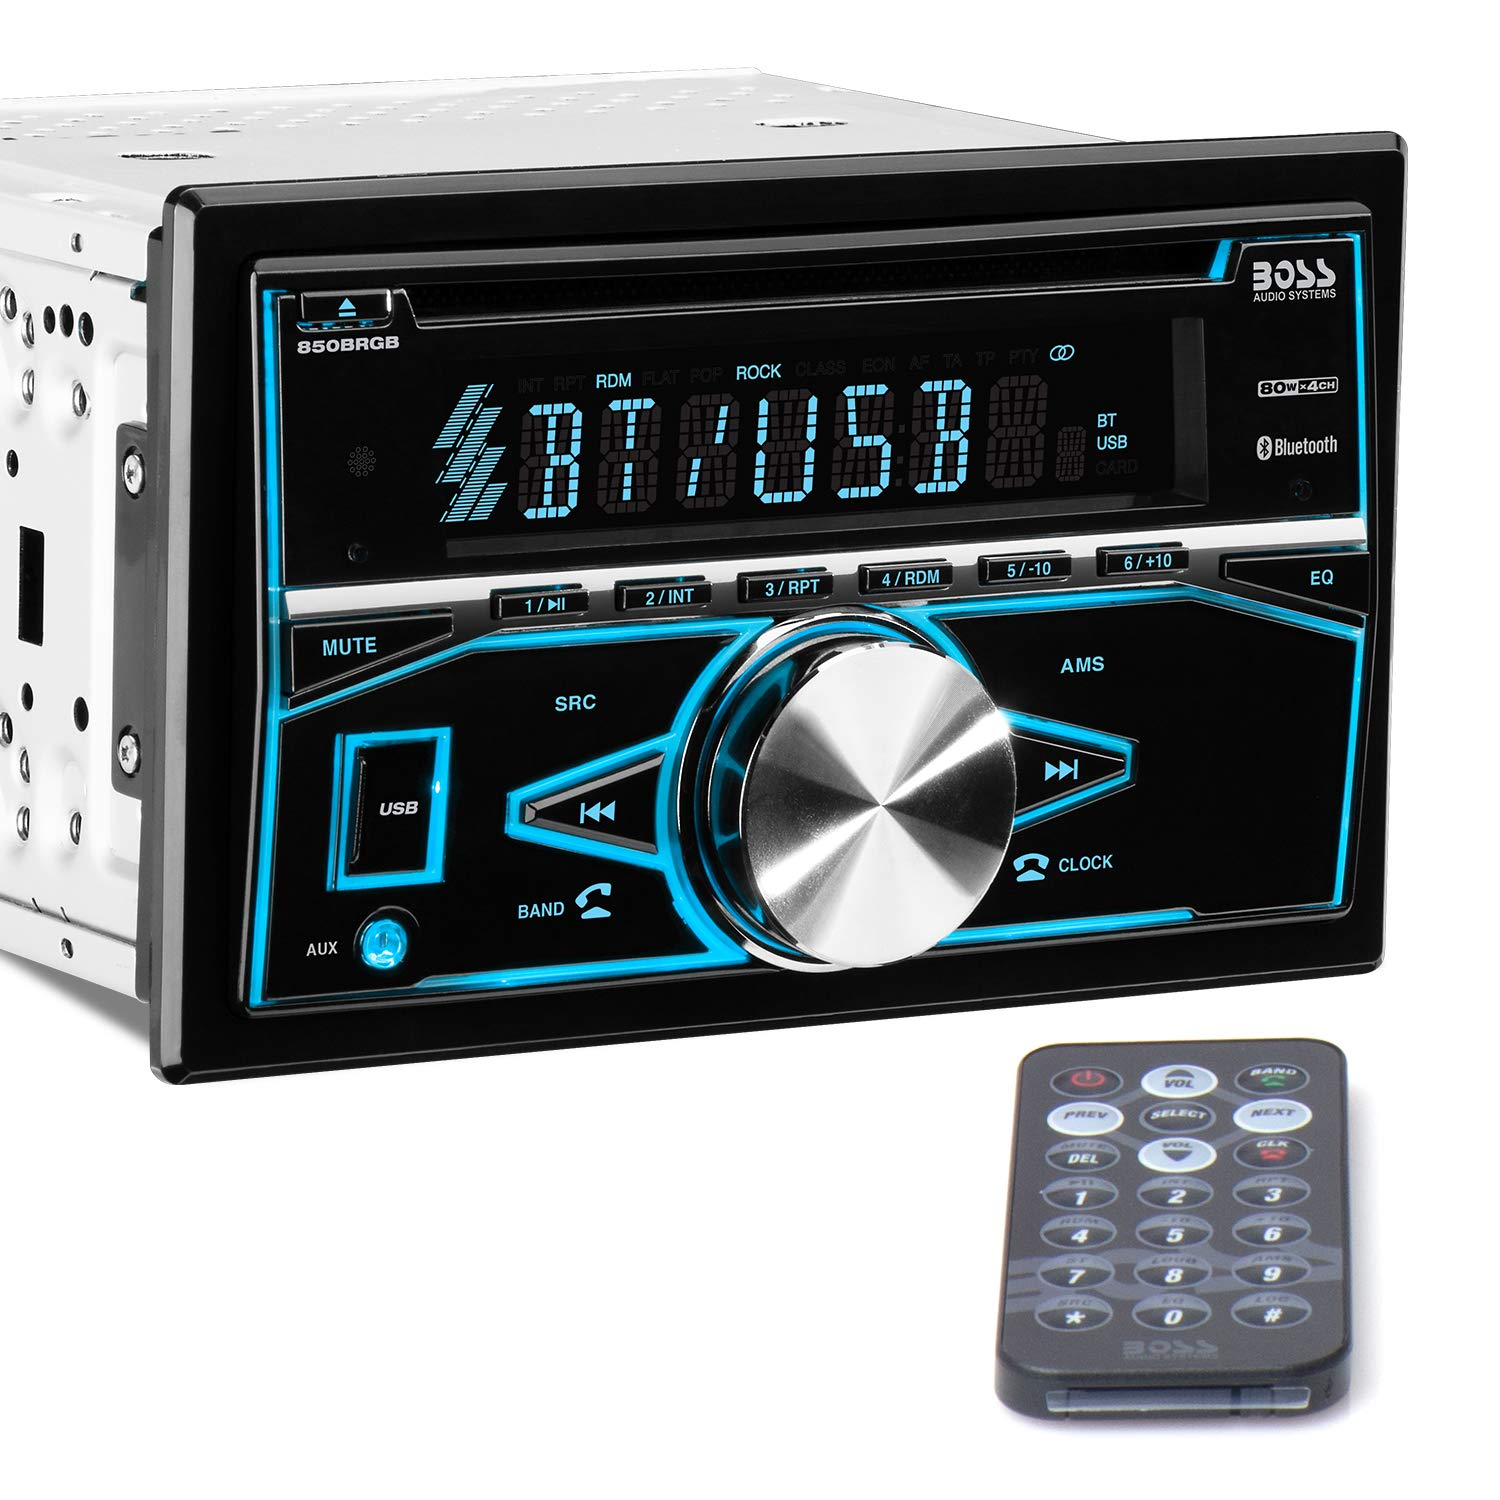 BOSS Audio Systems 850BRGB Car Stereo - Double Din, Bluetooth, CD MP3 USB AM FM Radio, Multi Color Illumination by BOSS Audio Systems